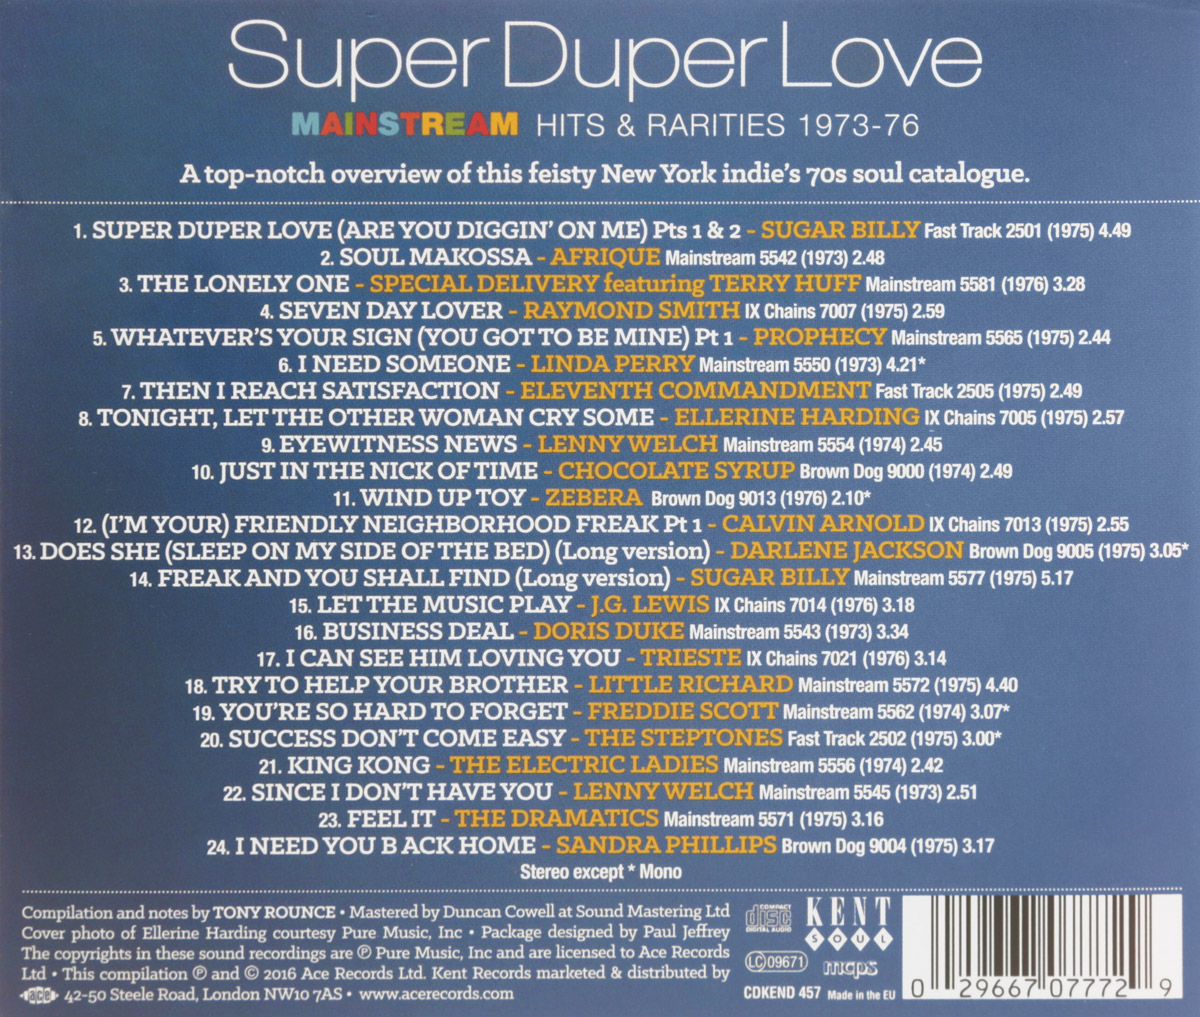 Super Duper Love. Mainstream Hits & Rarities 1973-76